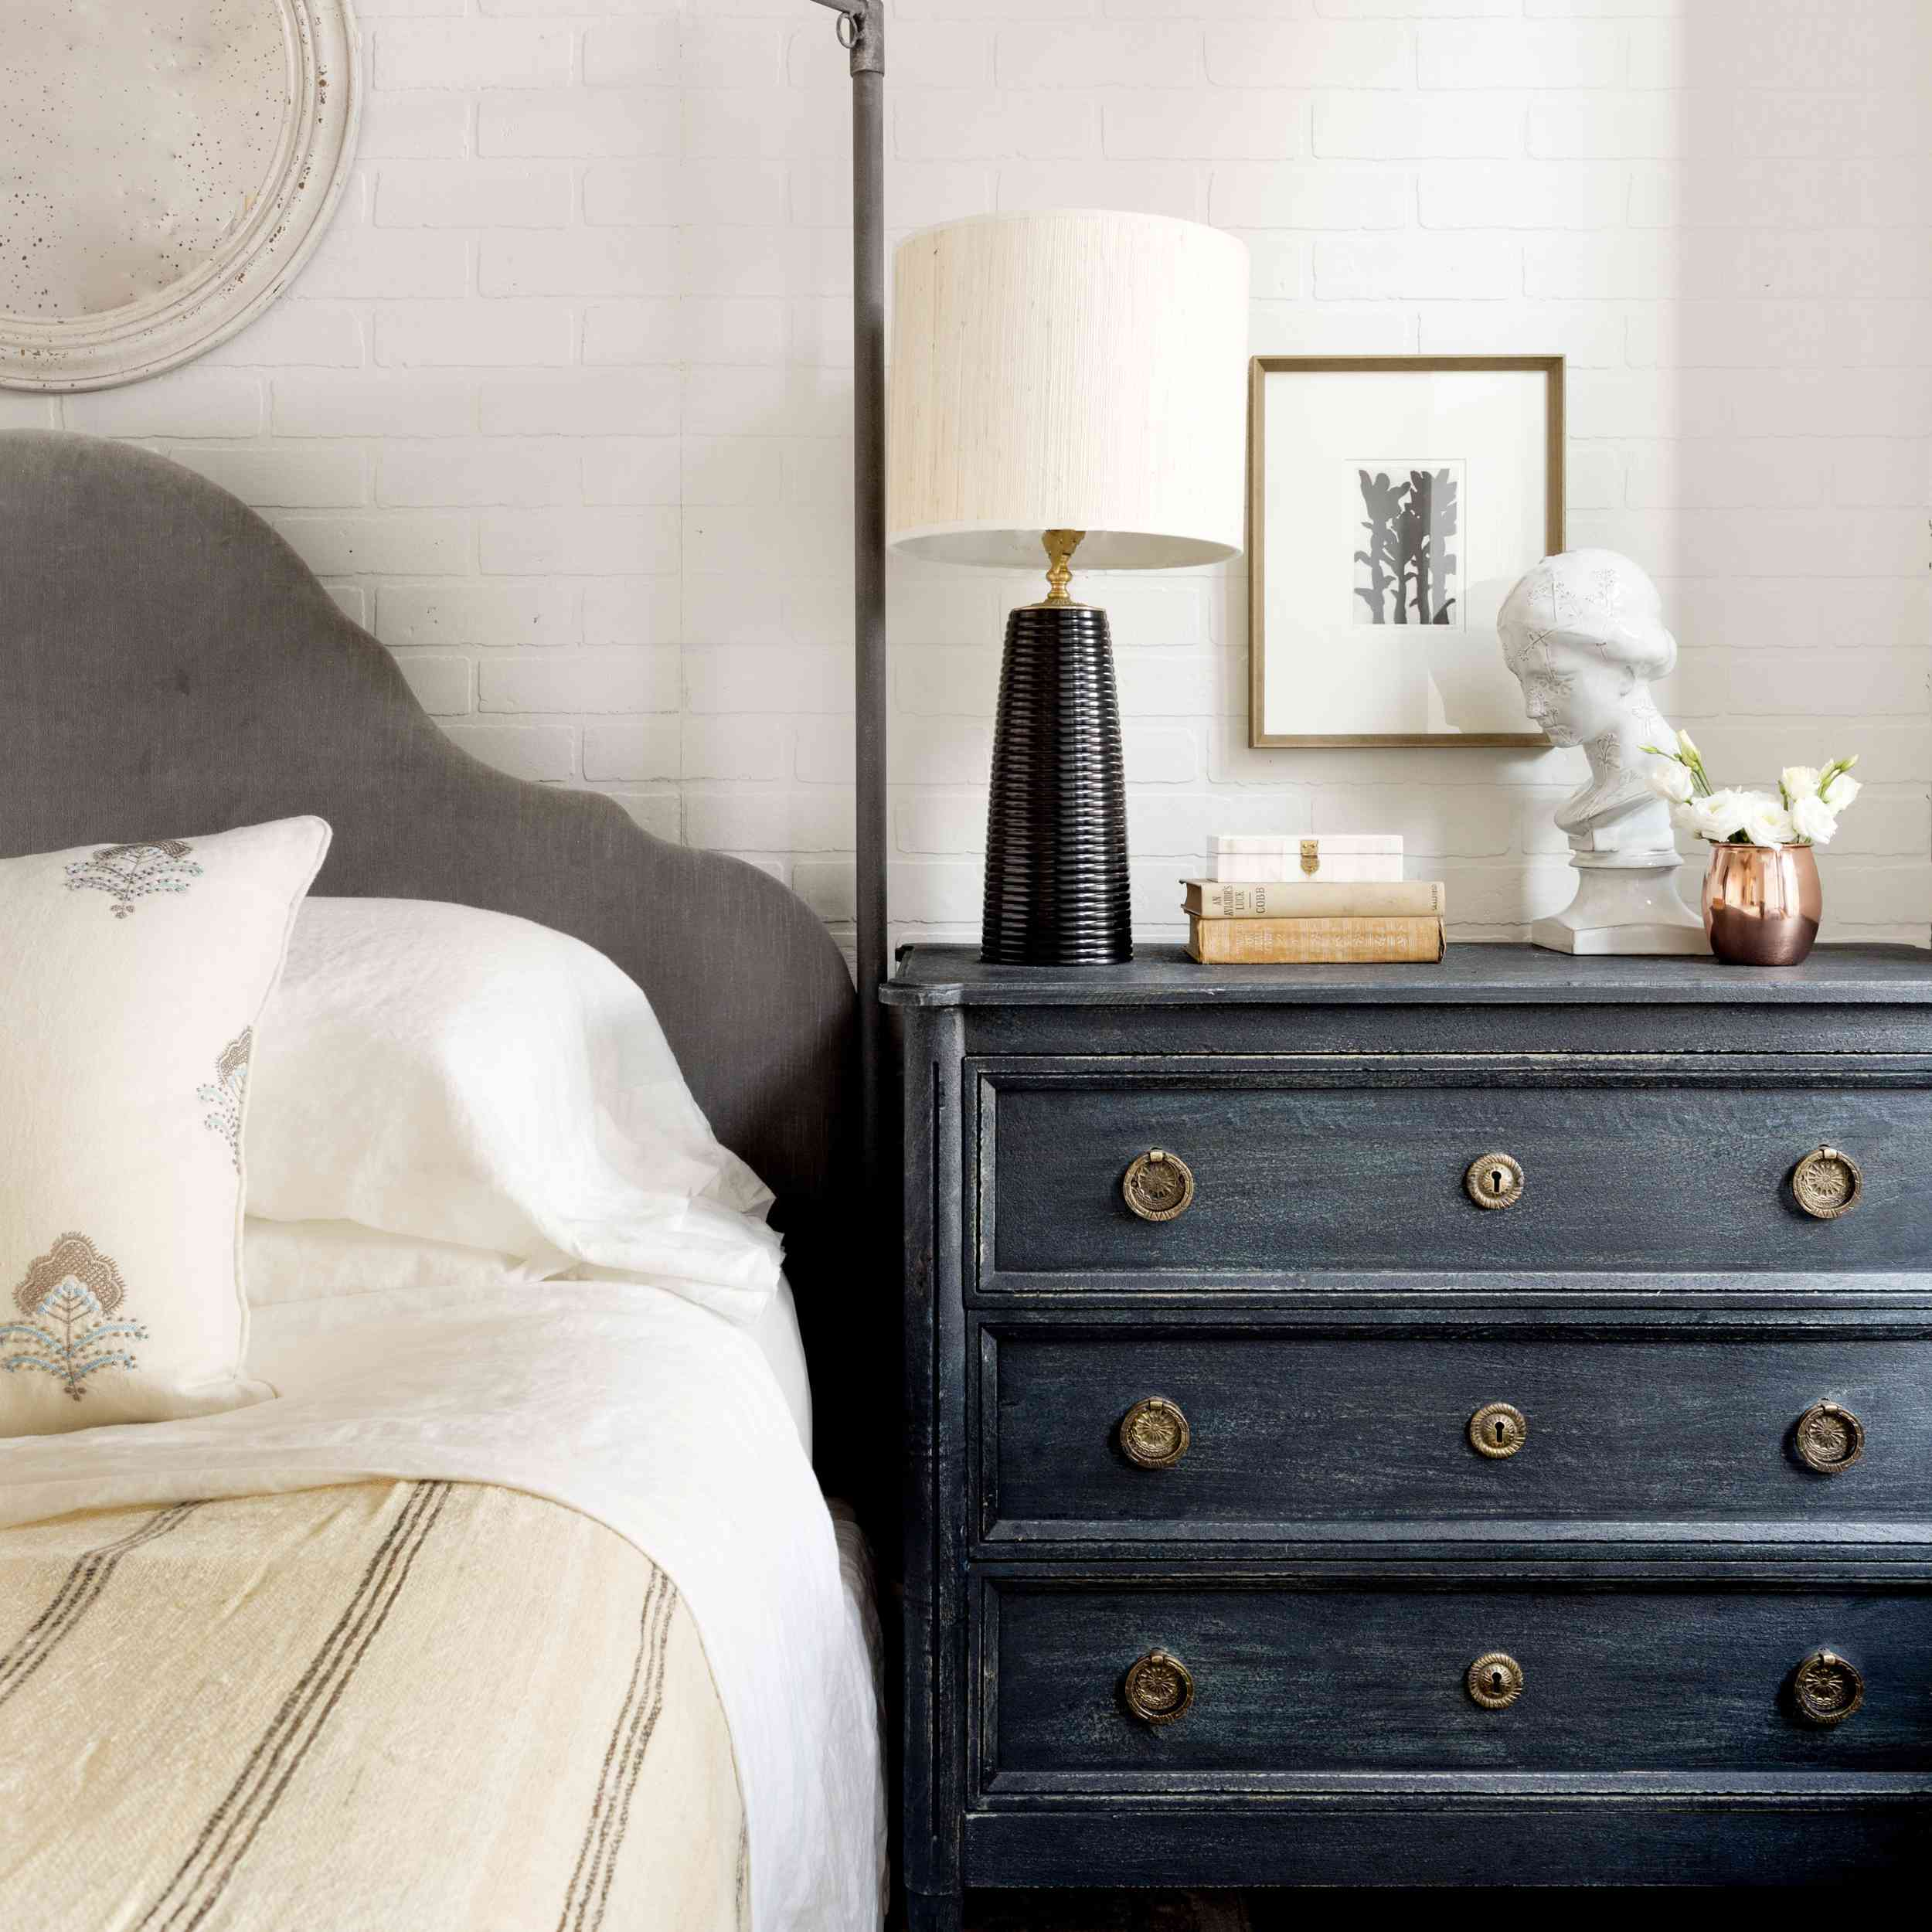 A bedroom with a large indigo nightstand